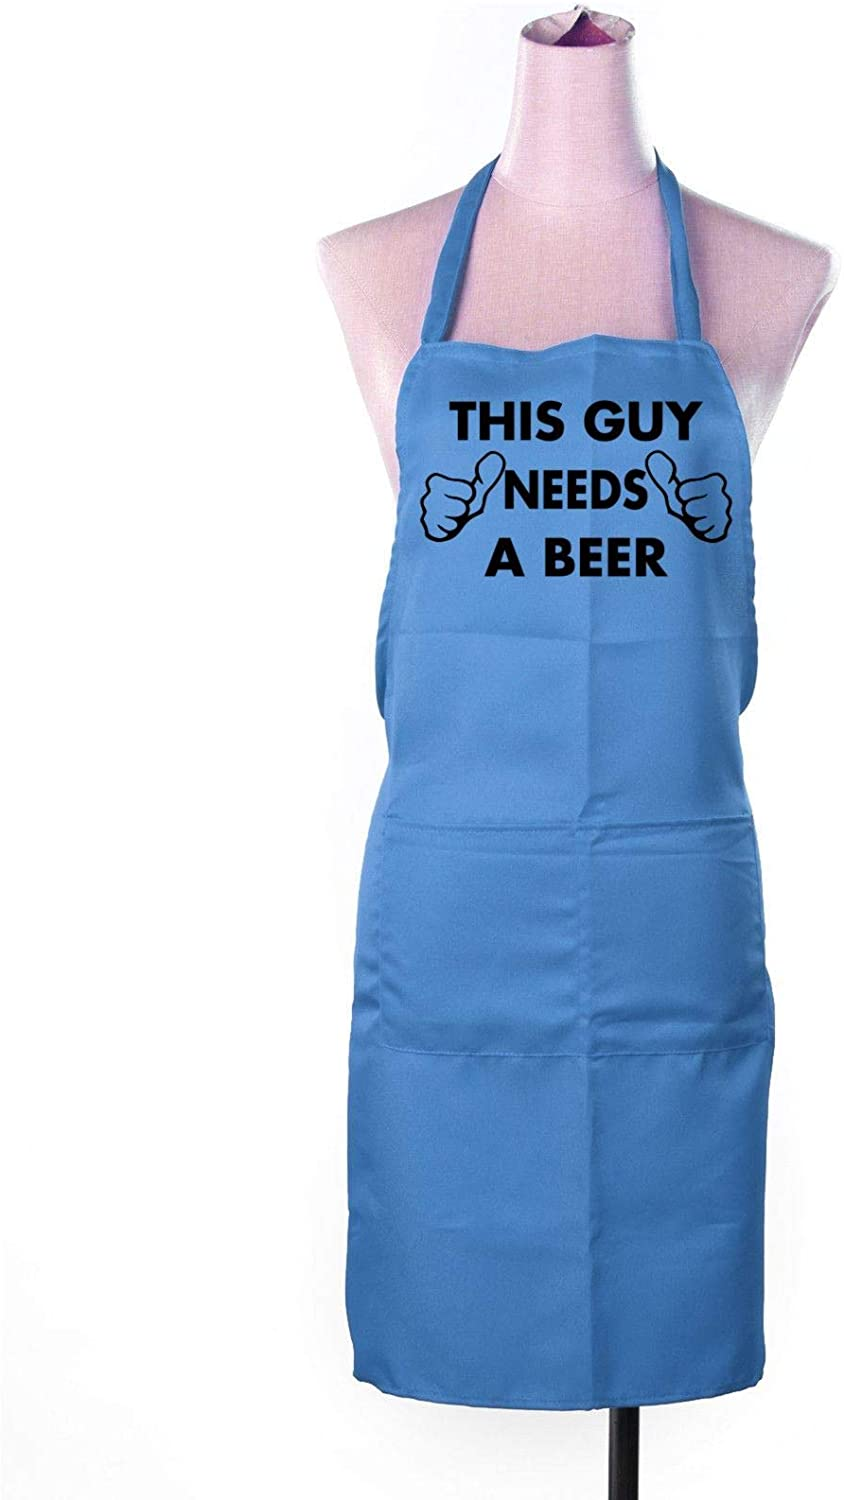 Festival-Fashion Funny Apron Mens Womens Cooking Novelty Rude Chefs Gift This Guy Needs A Beer Blue